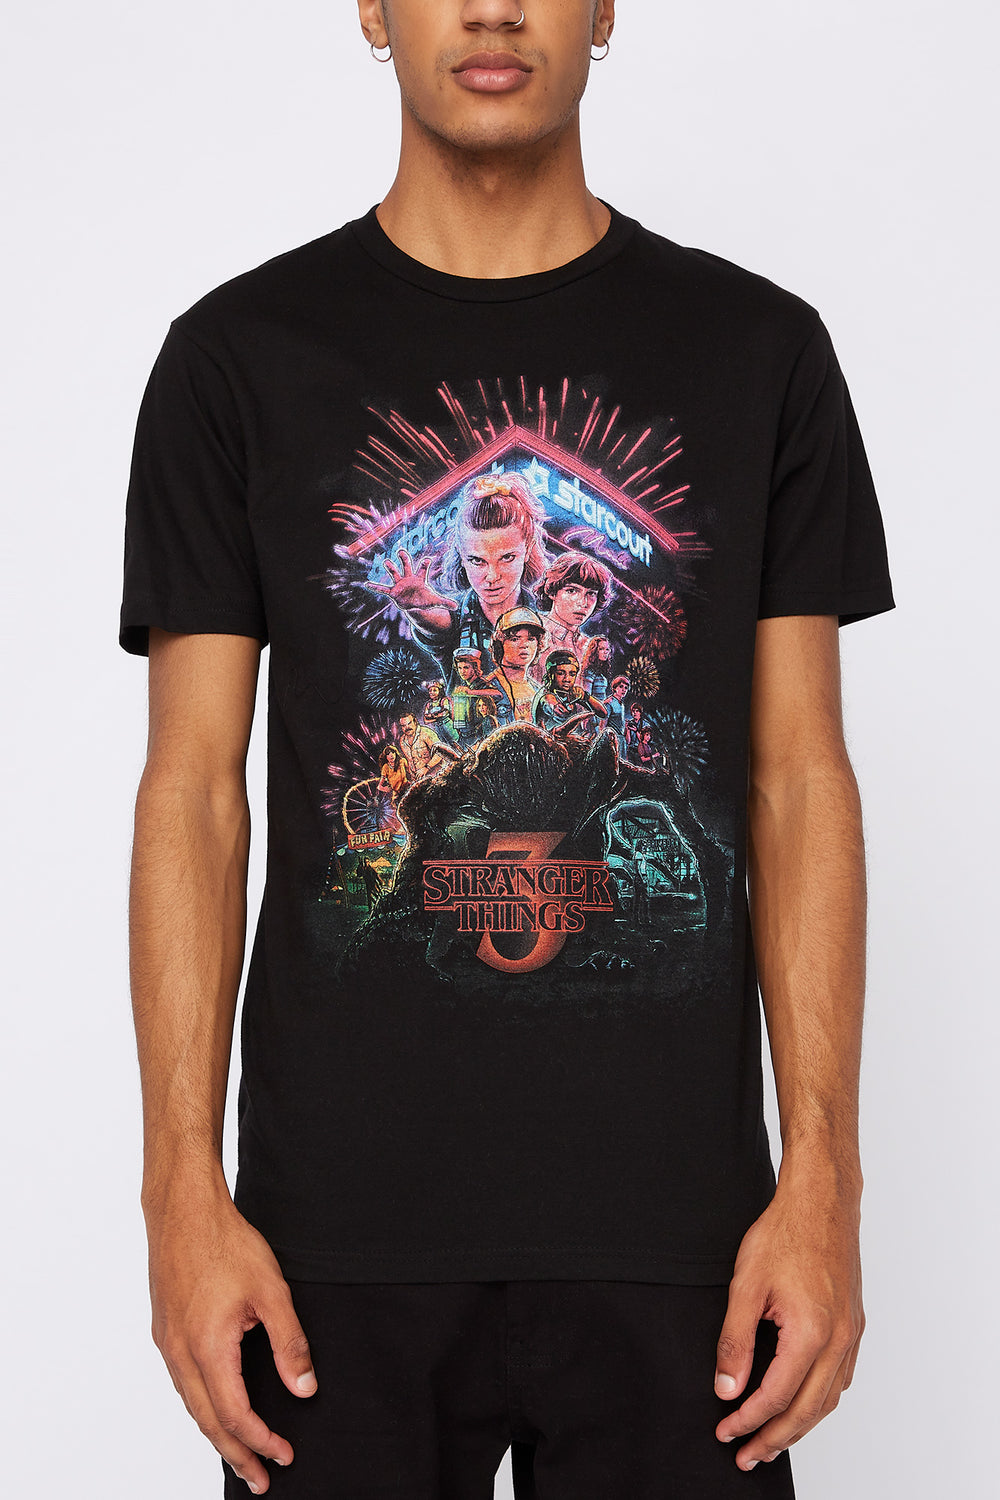 Stranger Things Mens Graphic T-Shirt Black